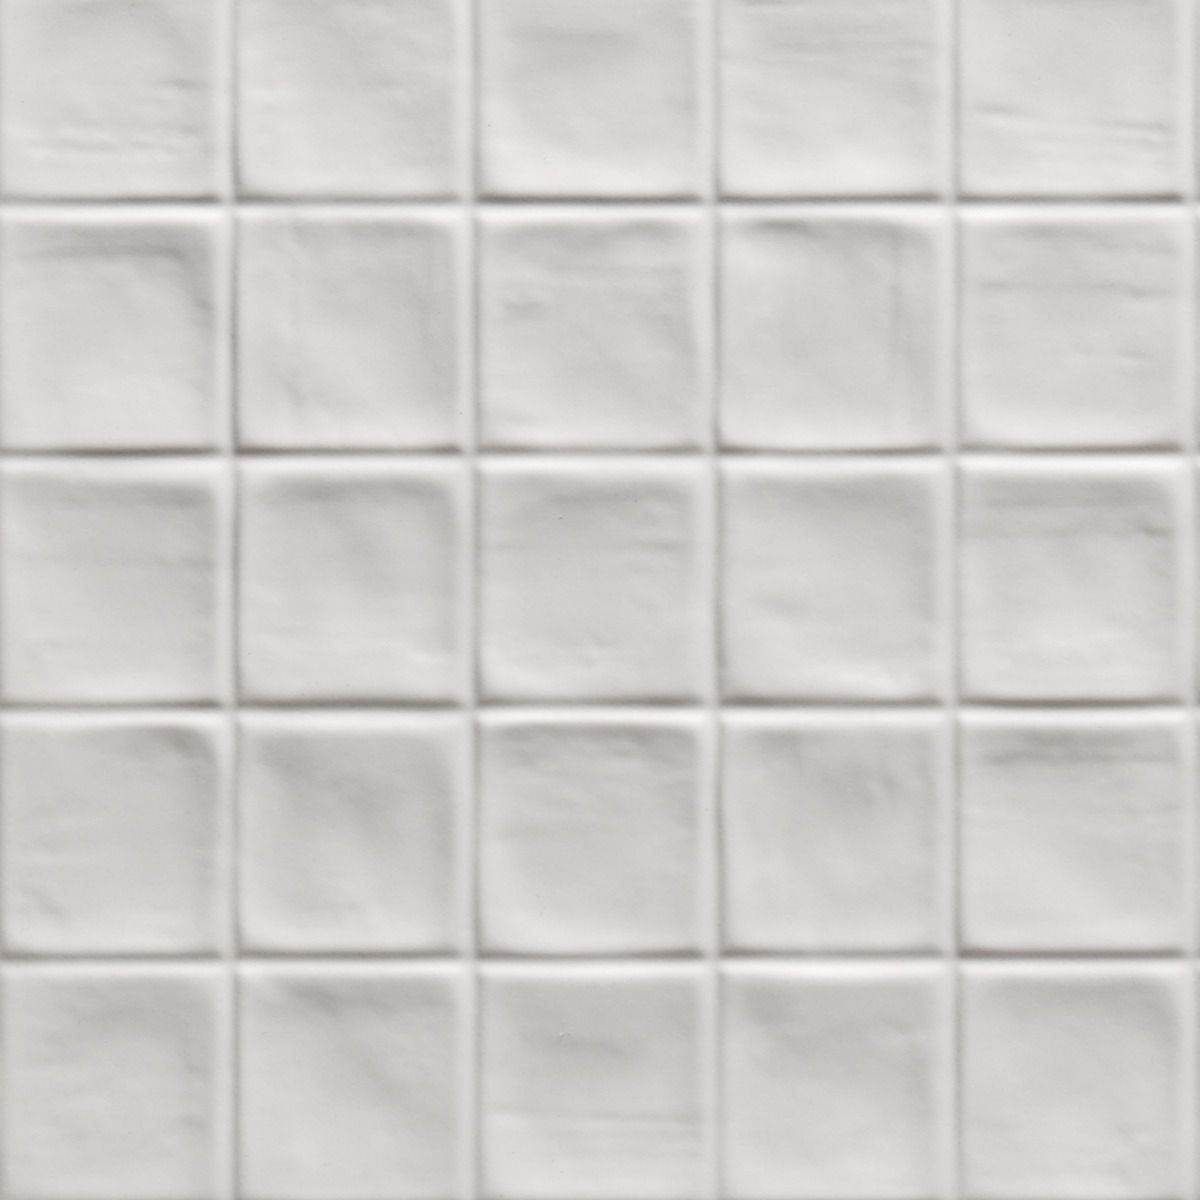 Azulejos Mosaico Azulejo Colette Mosaico Blanco In 2019 For The Home Tiles